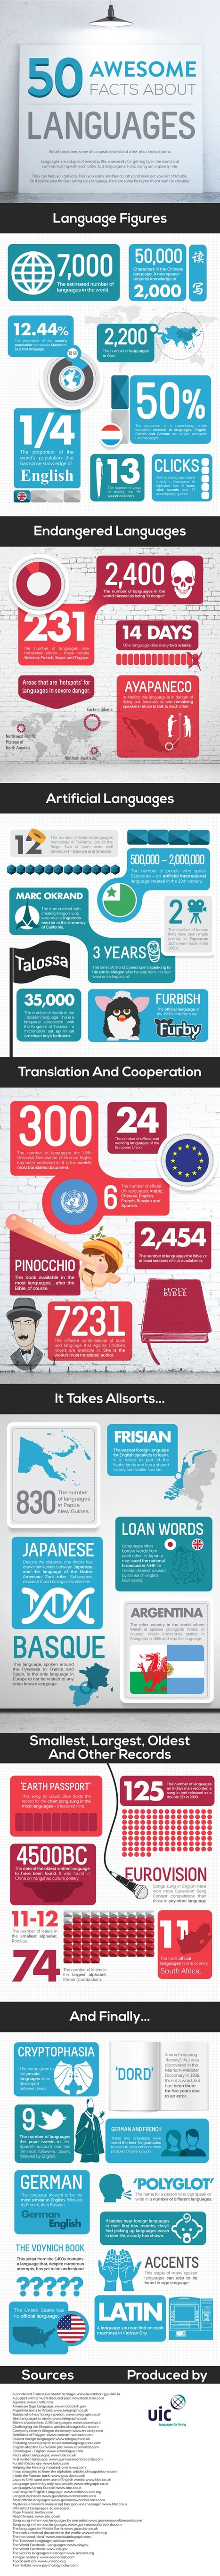 50 awesome facts about LANGUAGES | INFOGRAPHIC | Developing as a teacher and manager | Scoop.it